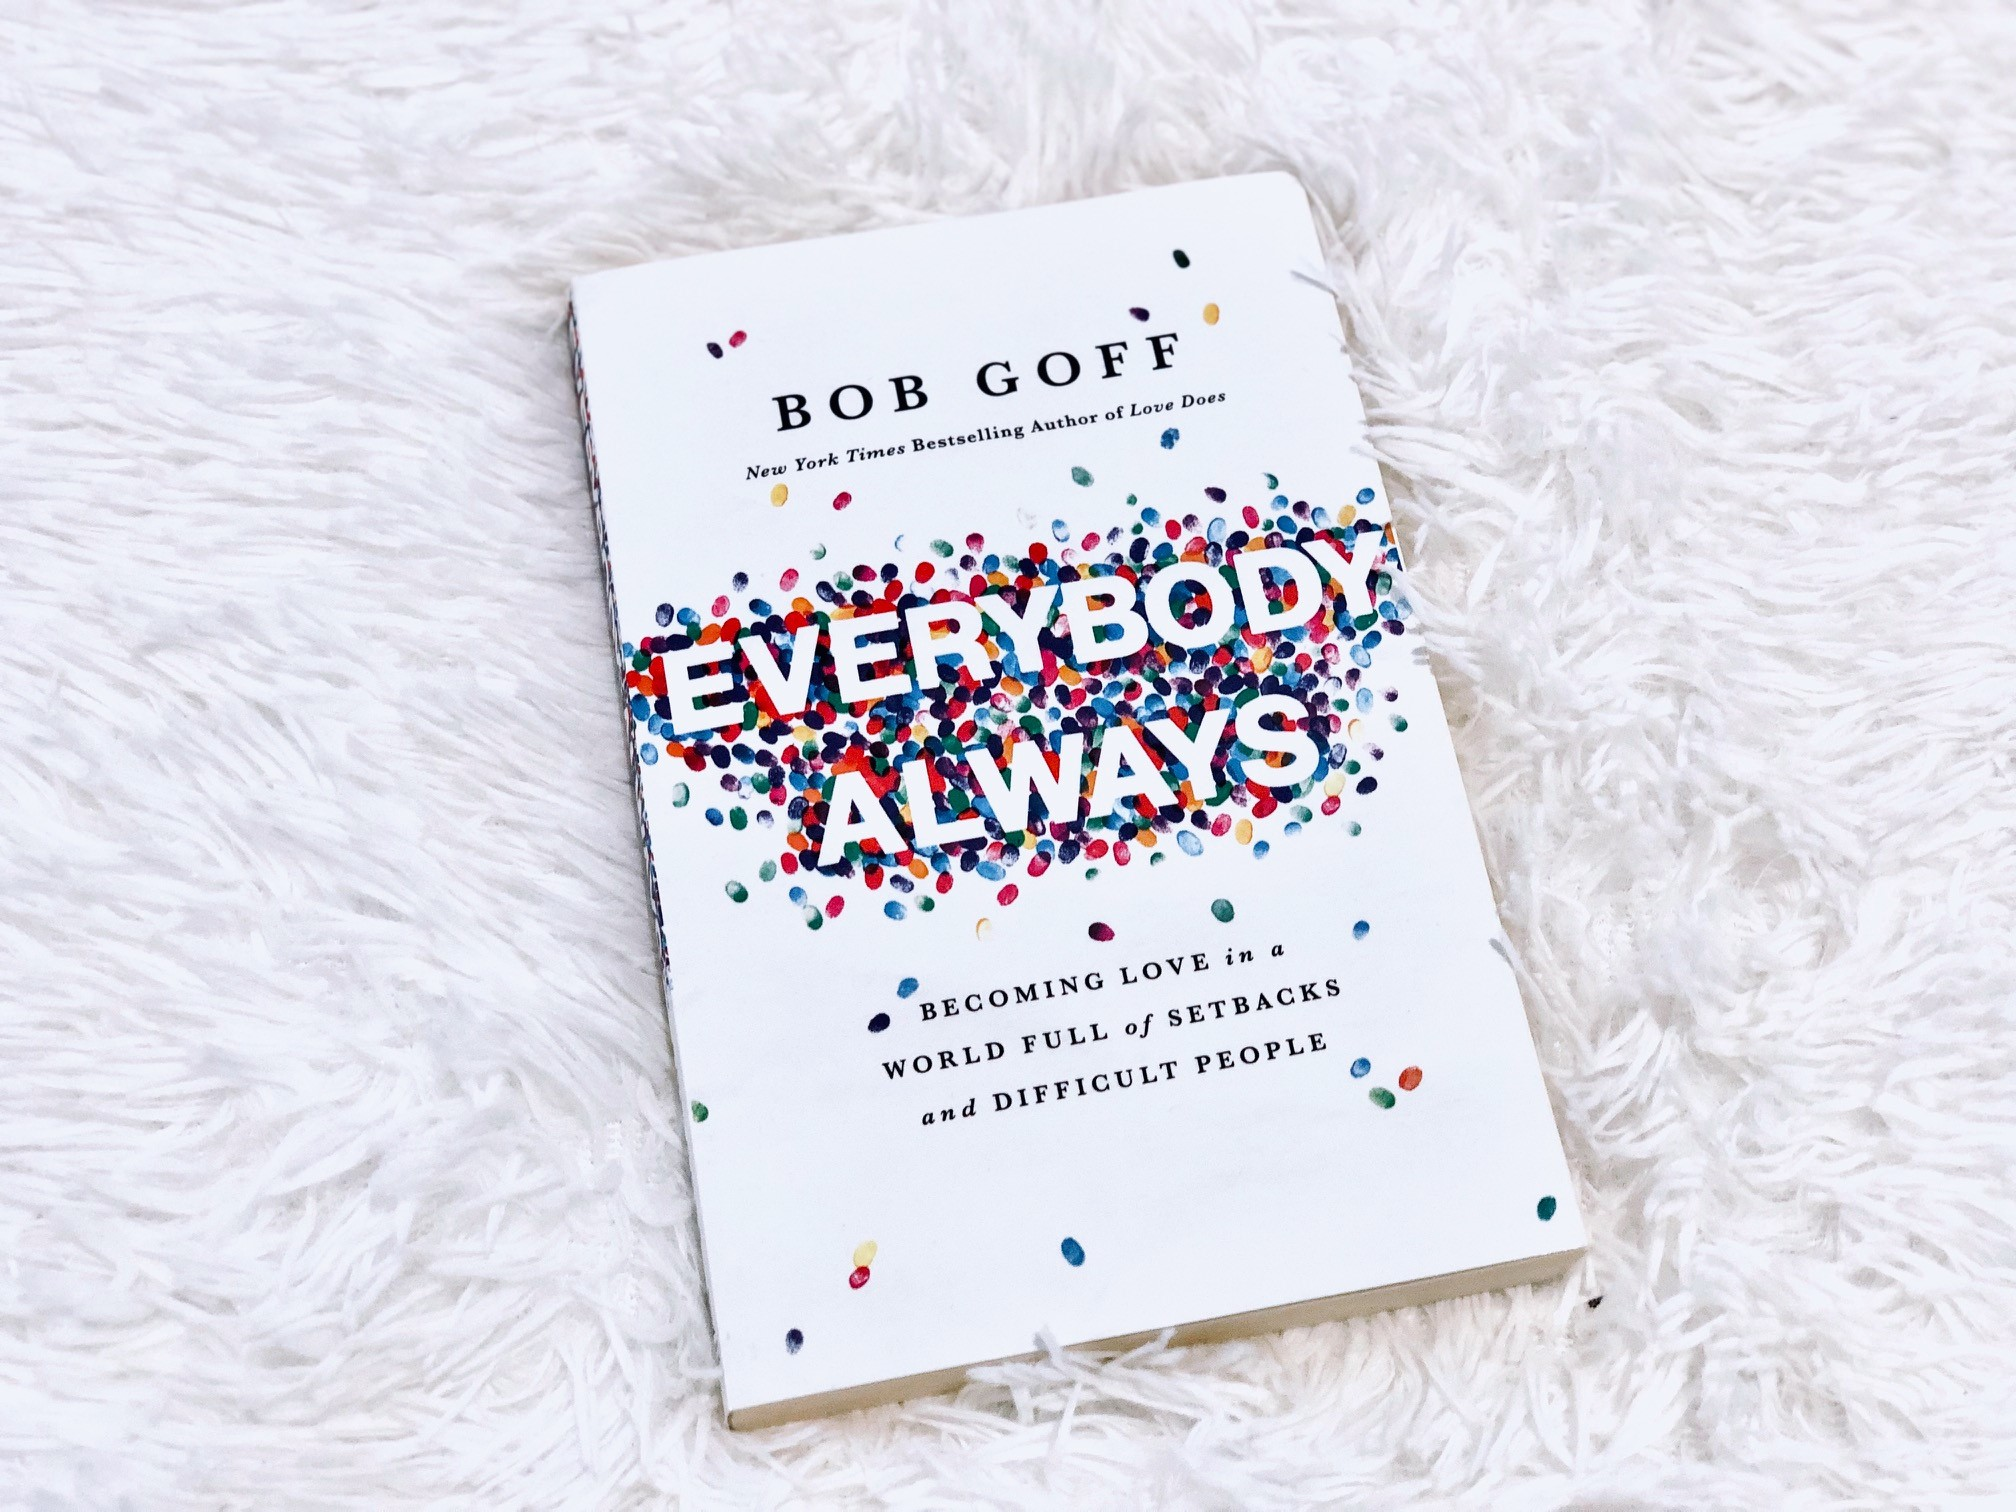 Everybody Always: Becoming Love in a World Full of Setbacks and Difficult People by Bob Goff